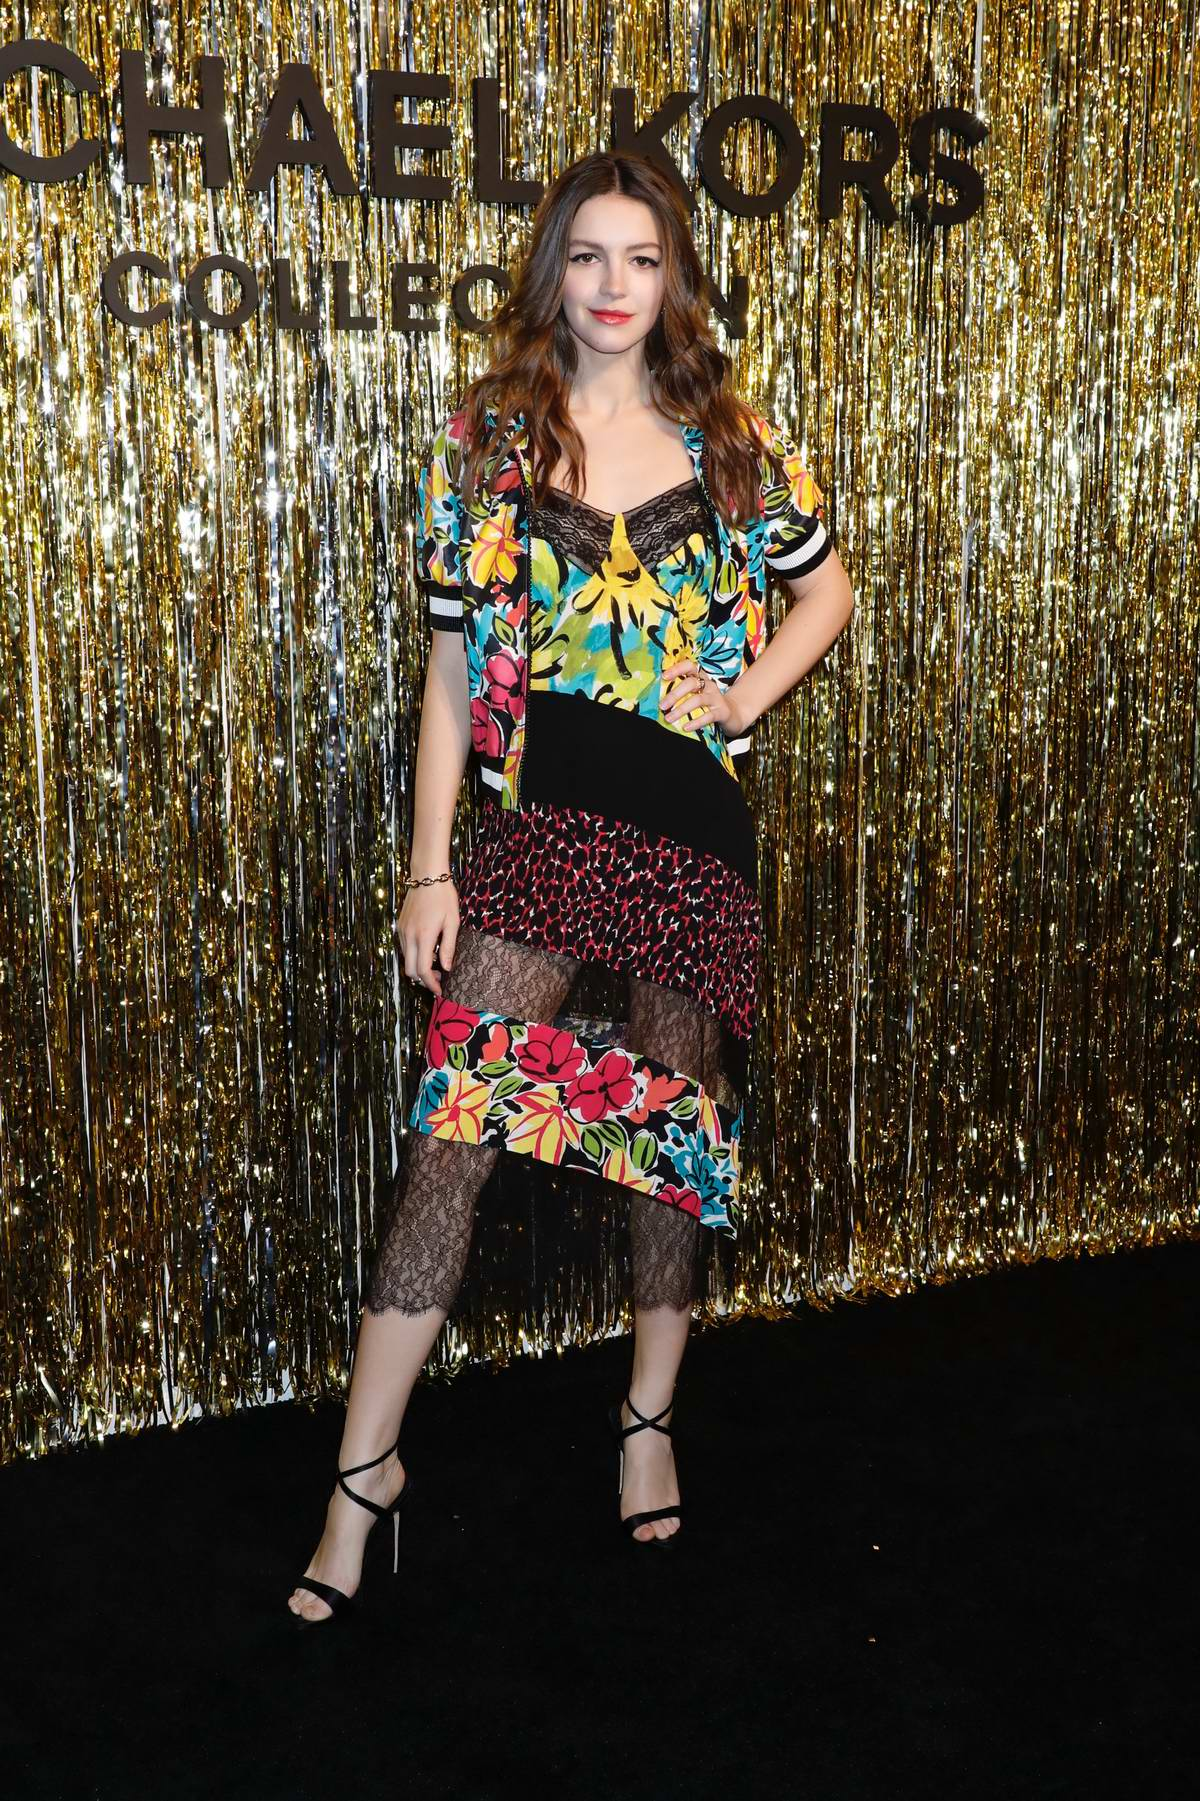 Ella Hunt attends Michael Kors fashion show during New York Fashion Week in New York City